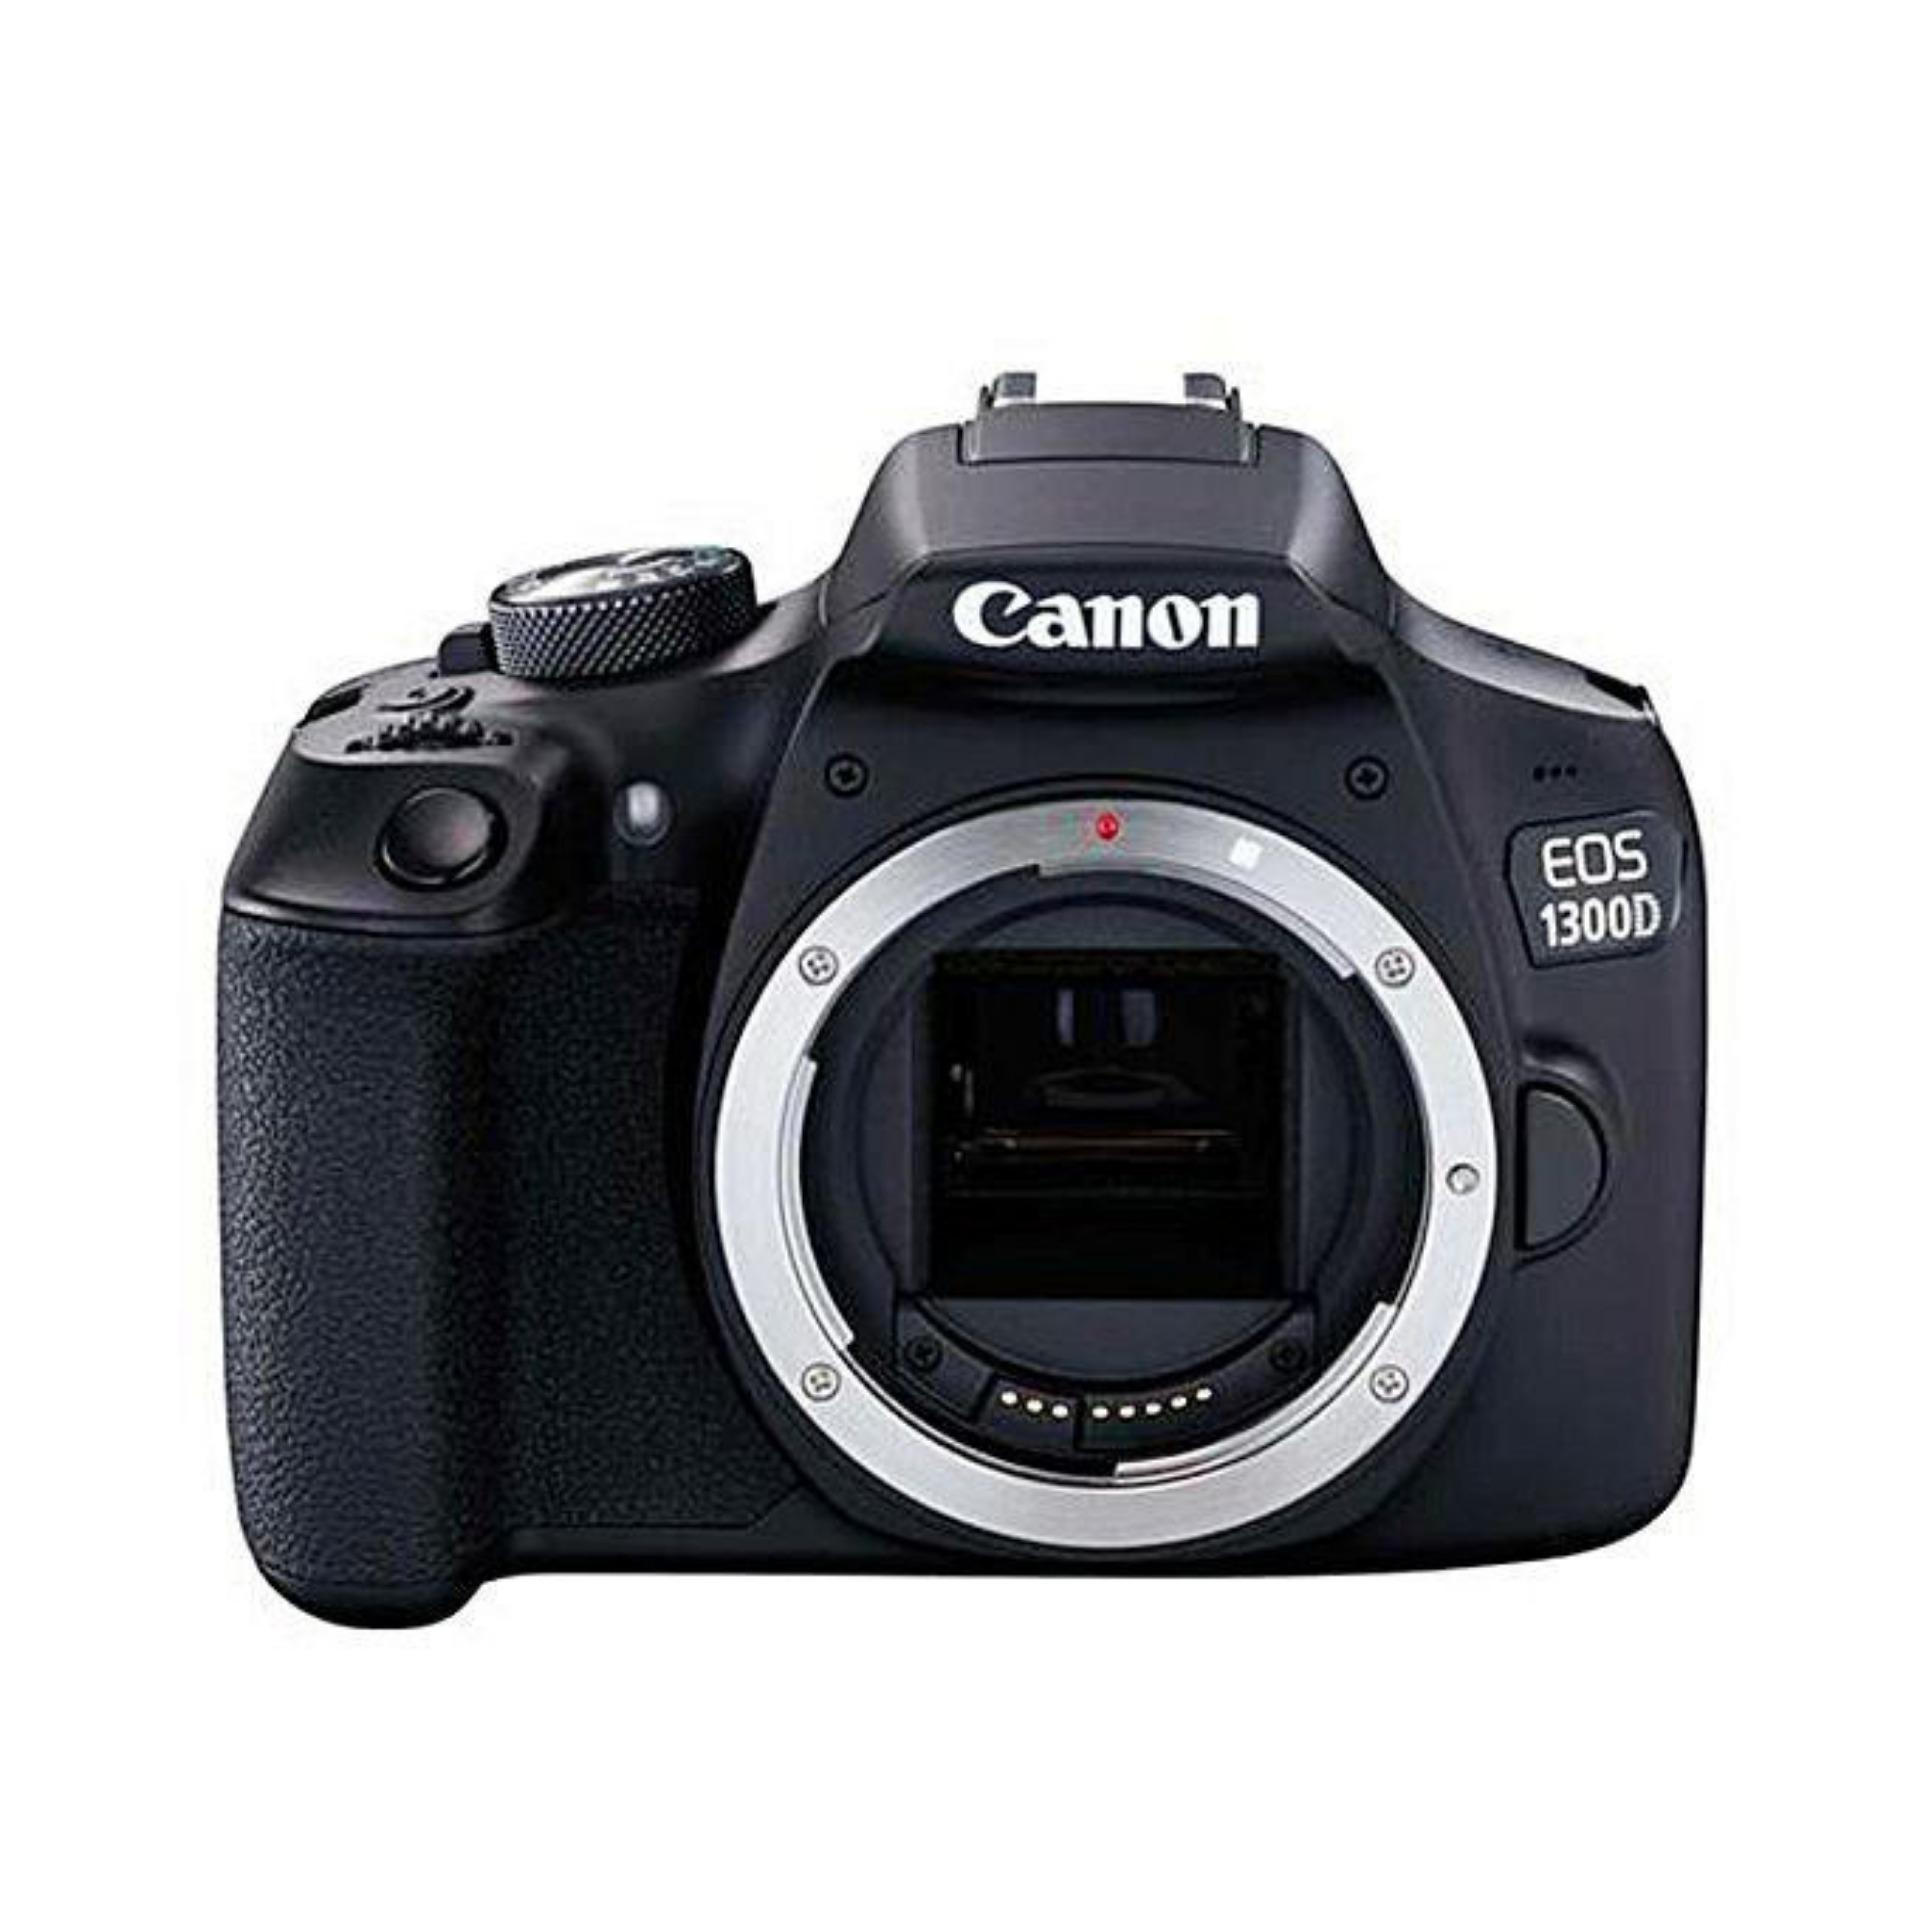 1300D - 18 0 MP - DSLR Camera (Body Only) - Black